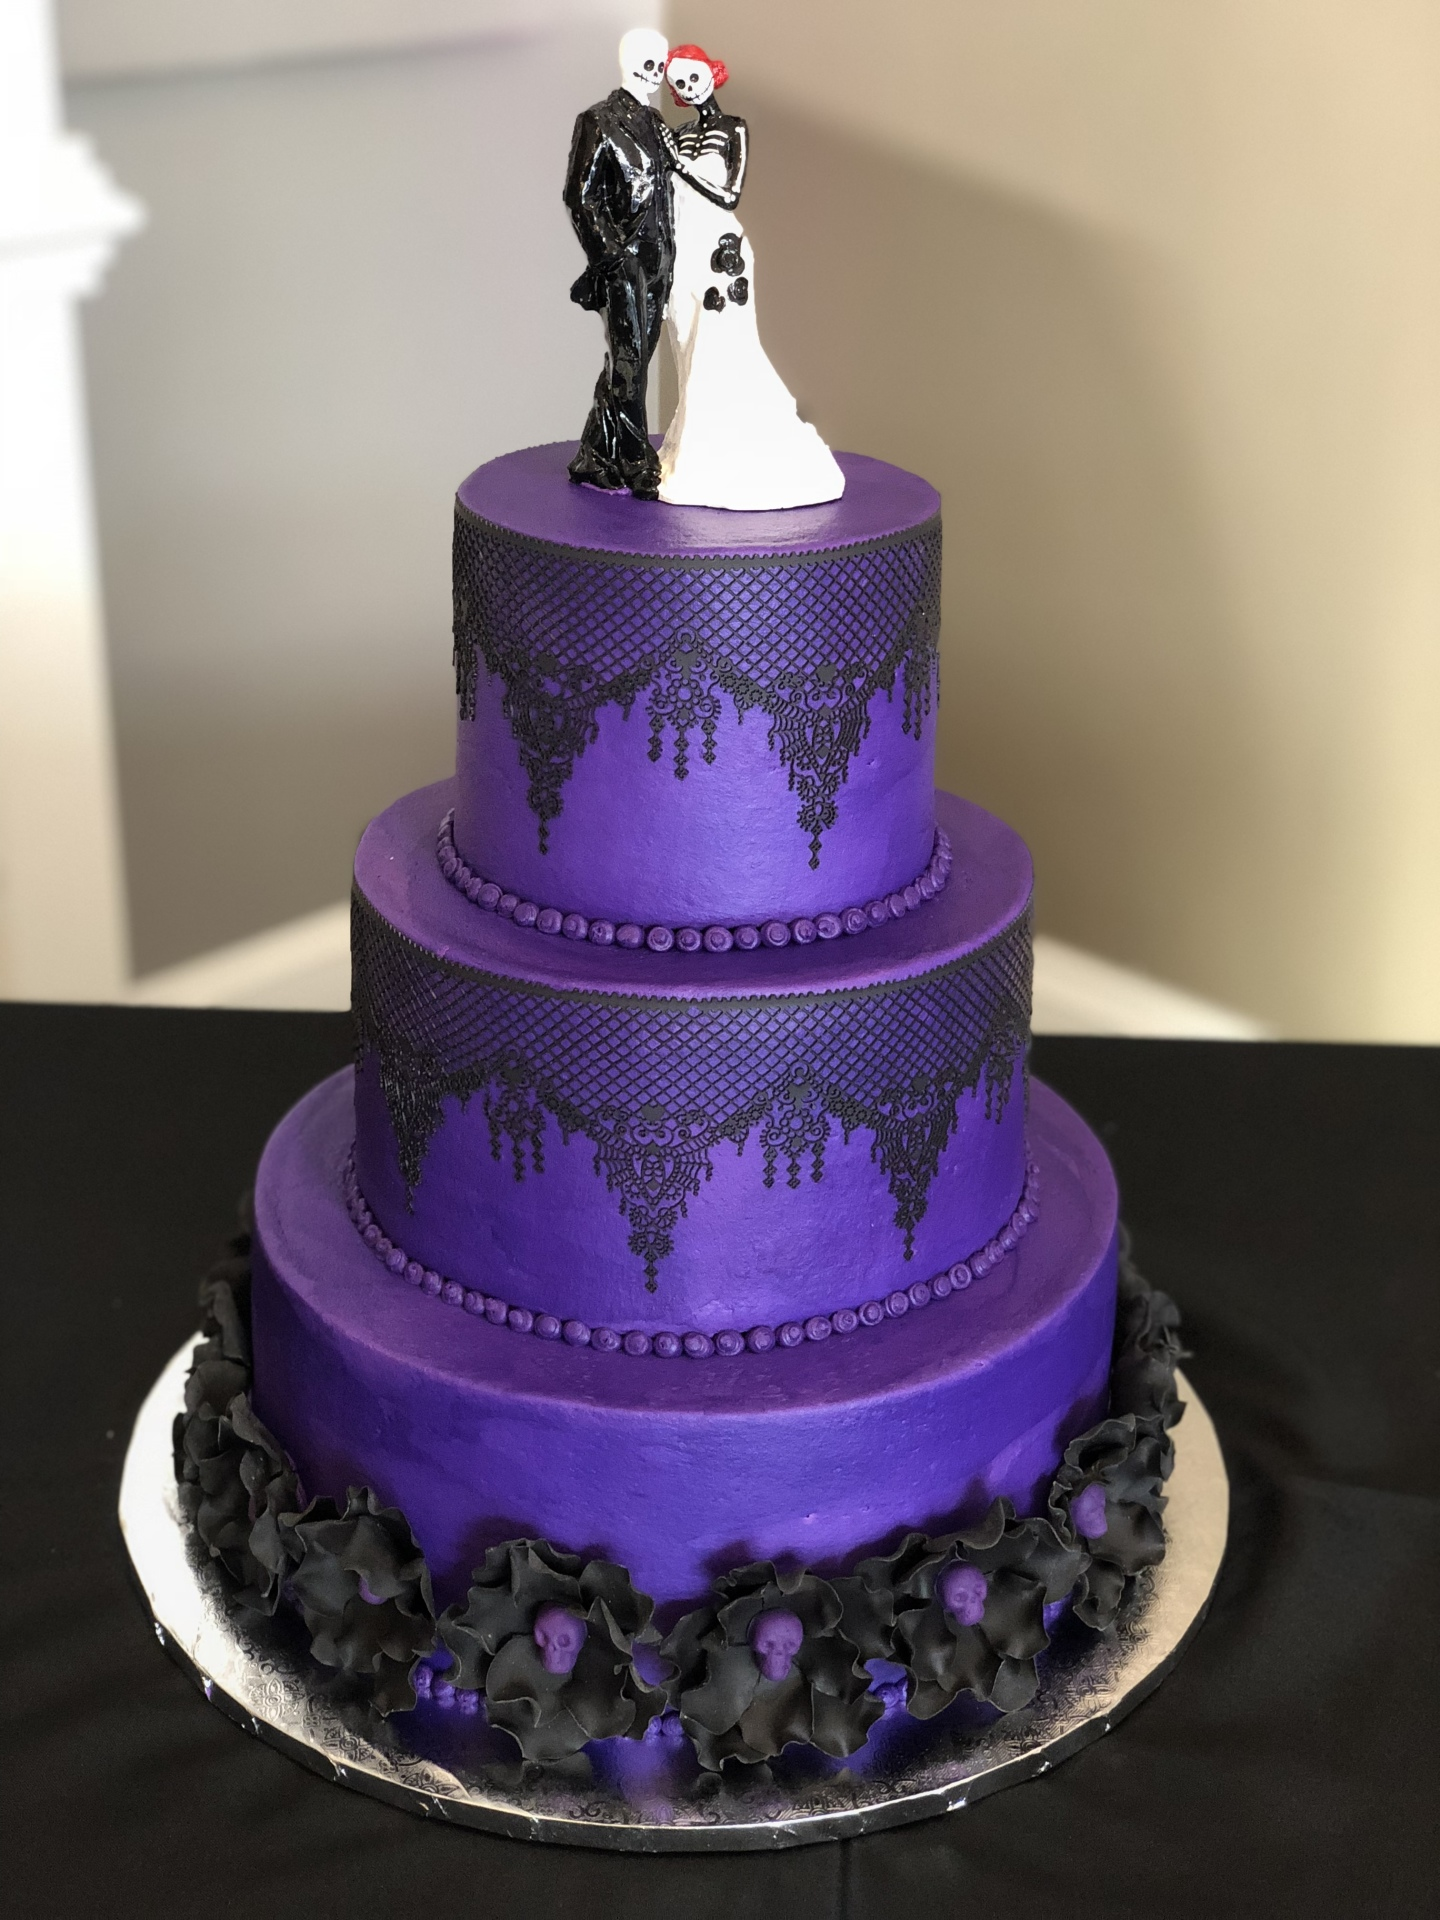 Goth theme- purple buttercream edible lace and sugar flowers